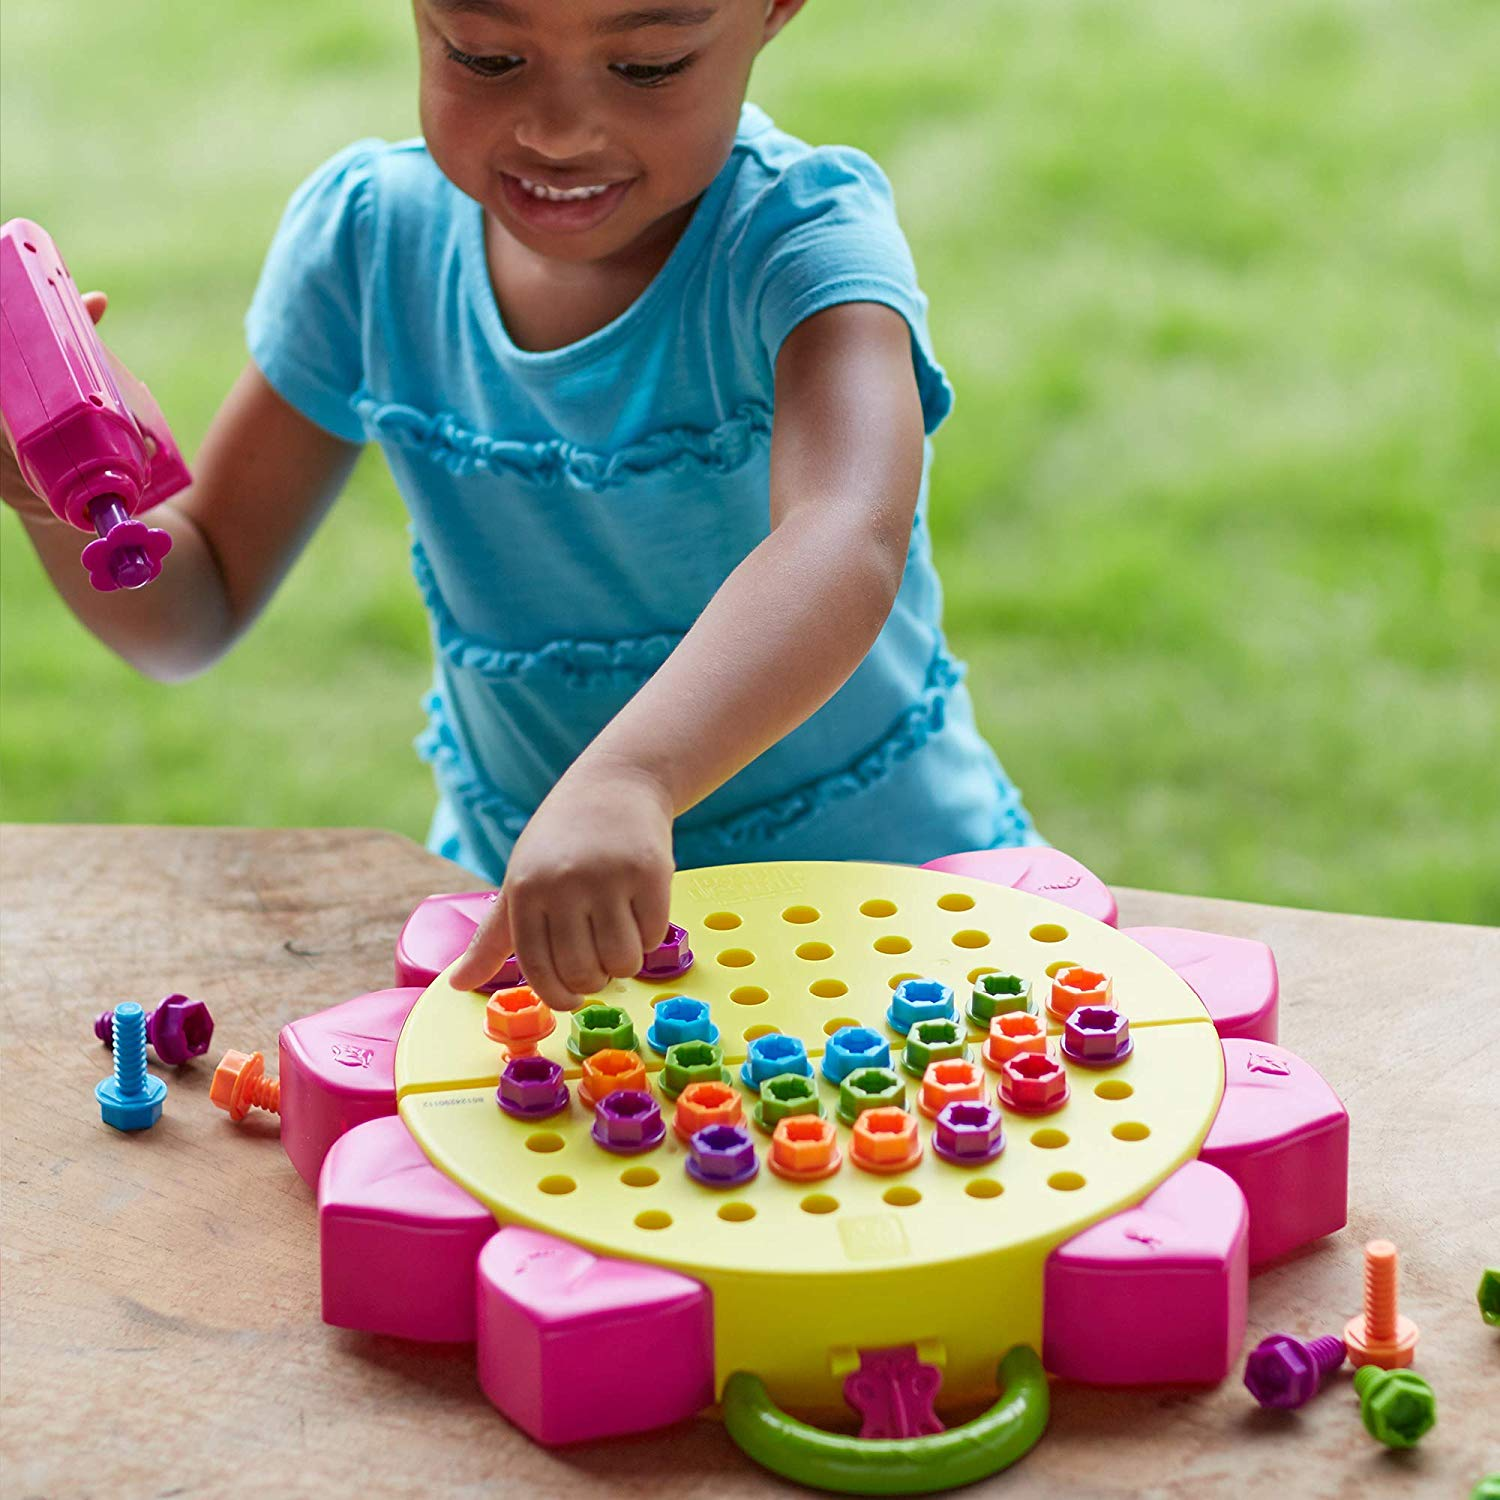 Best Stem Toys For Girls To Learn Coding Engineering Science